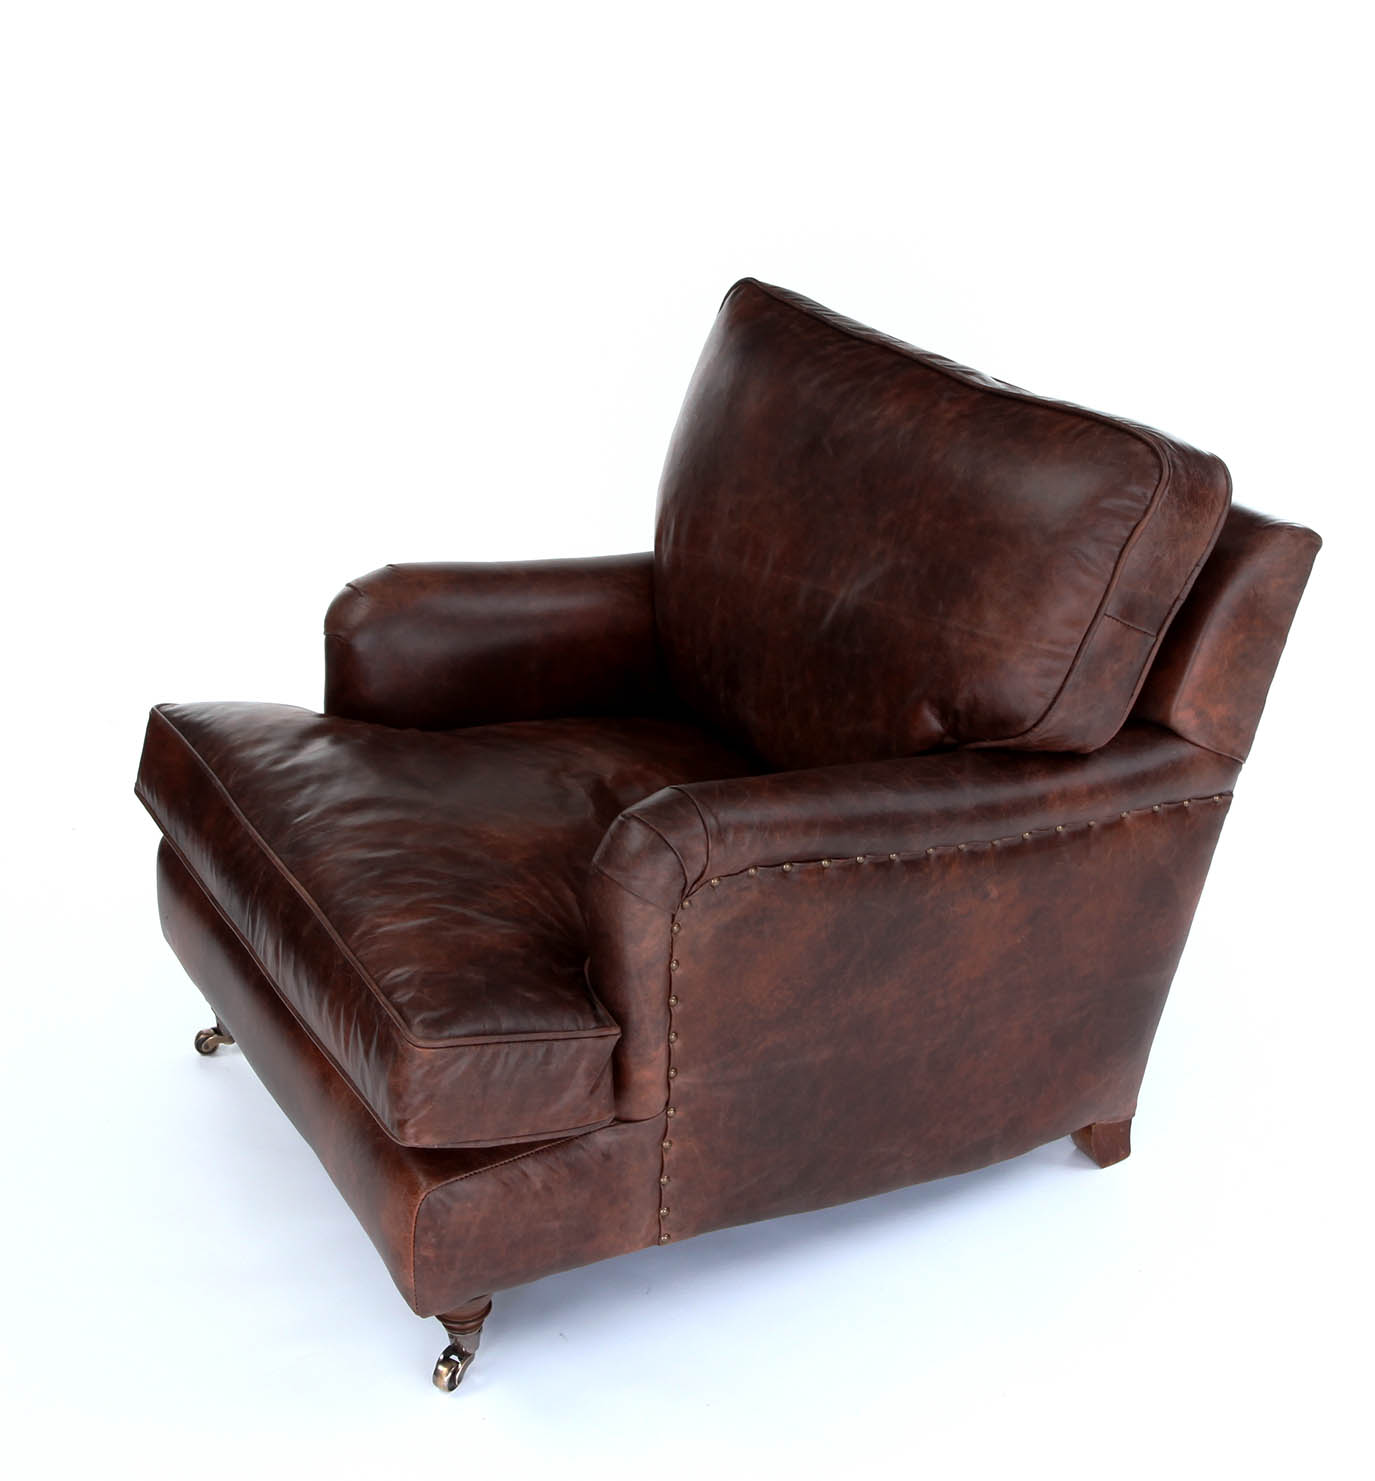 Old Boot Sofas